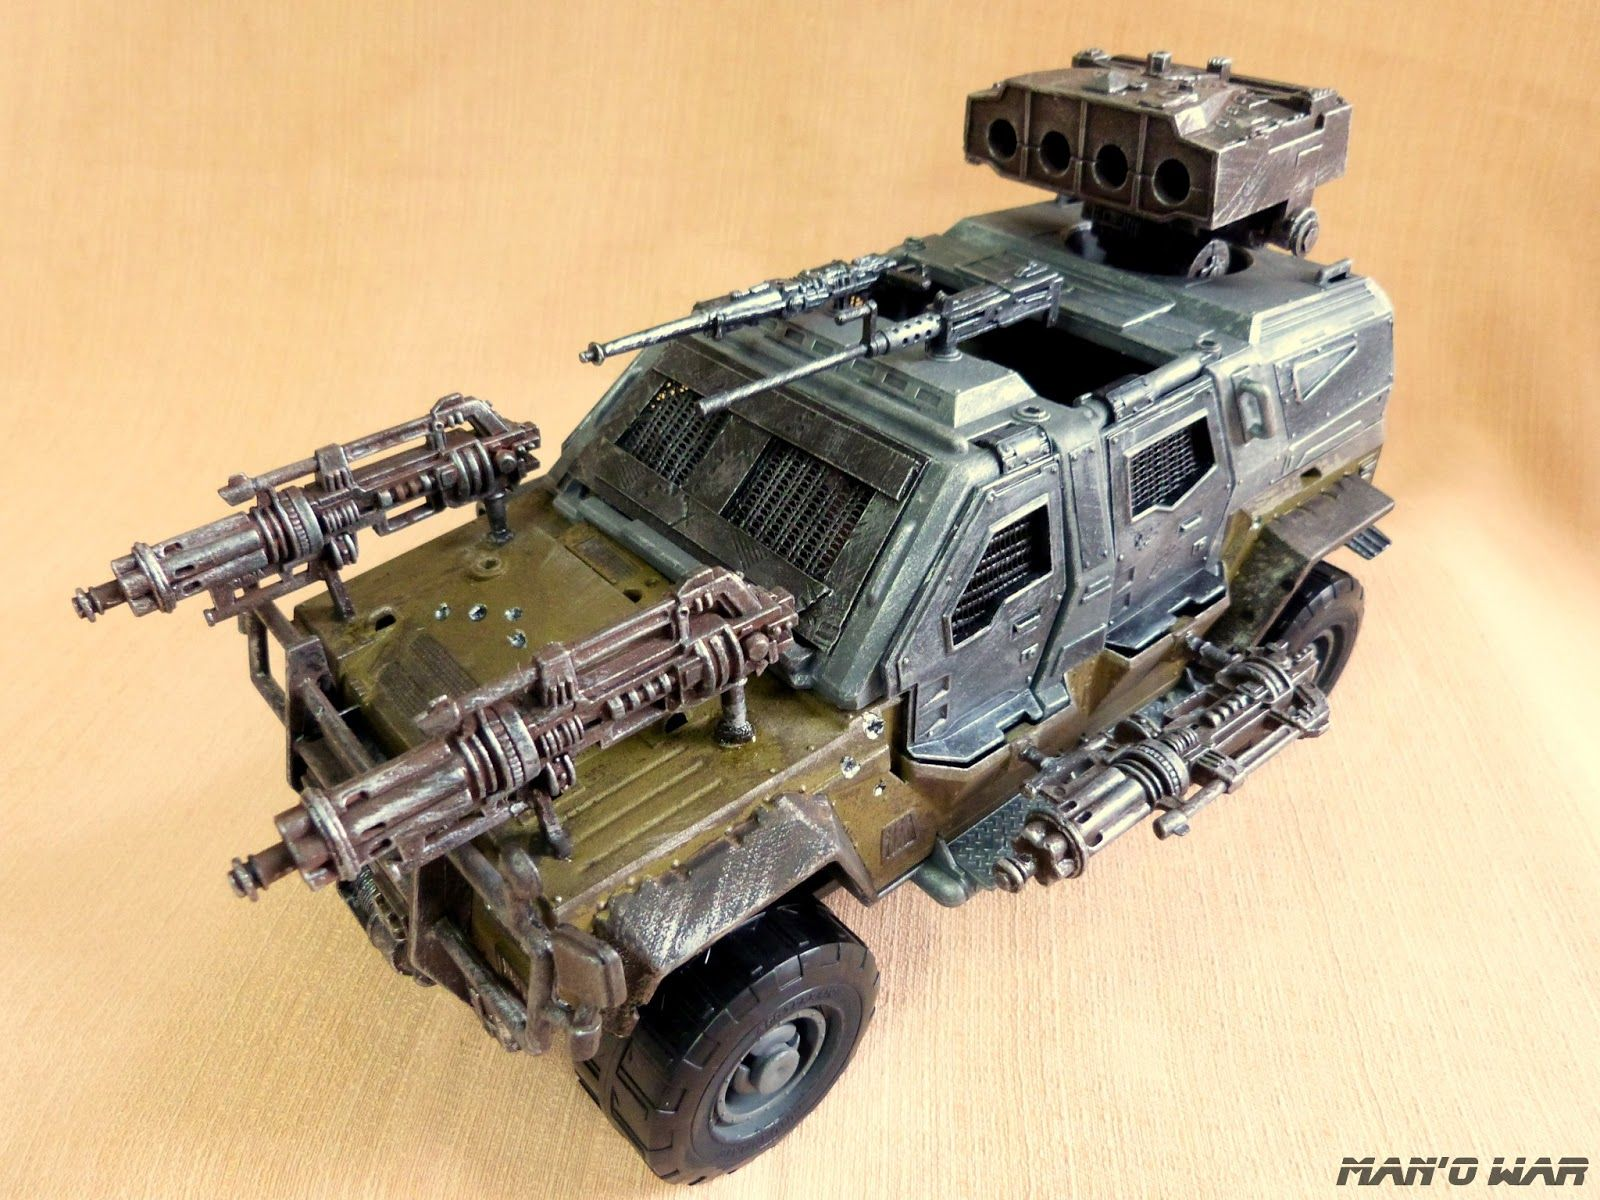 Vehicle postapocalypse post apocalypse nuclear pastnuclear